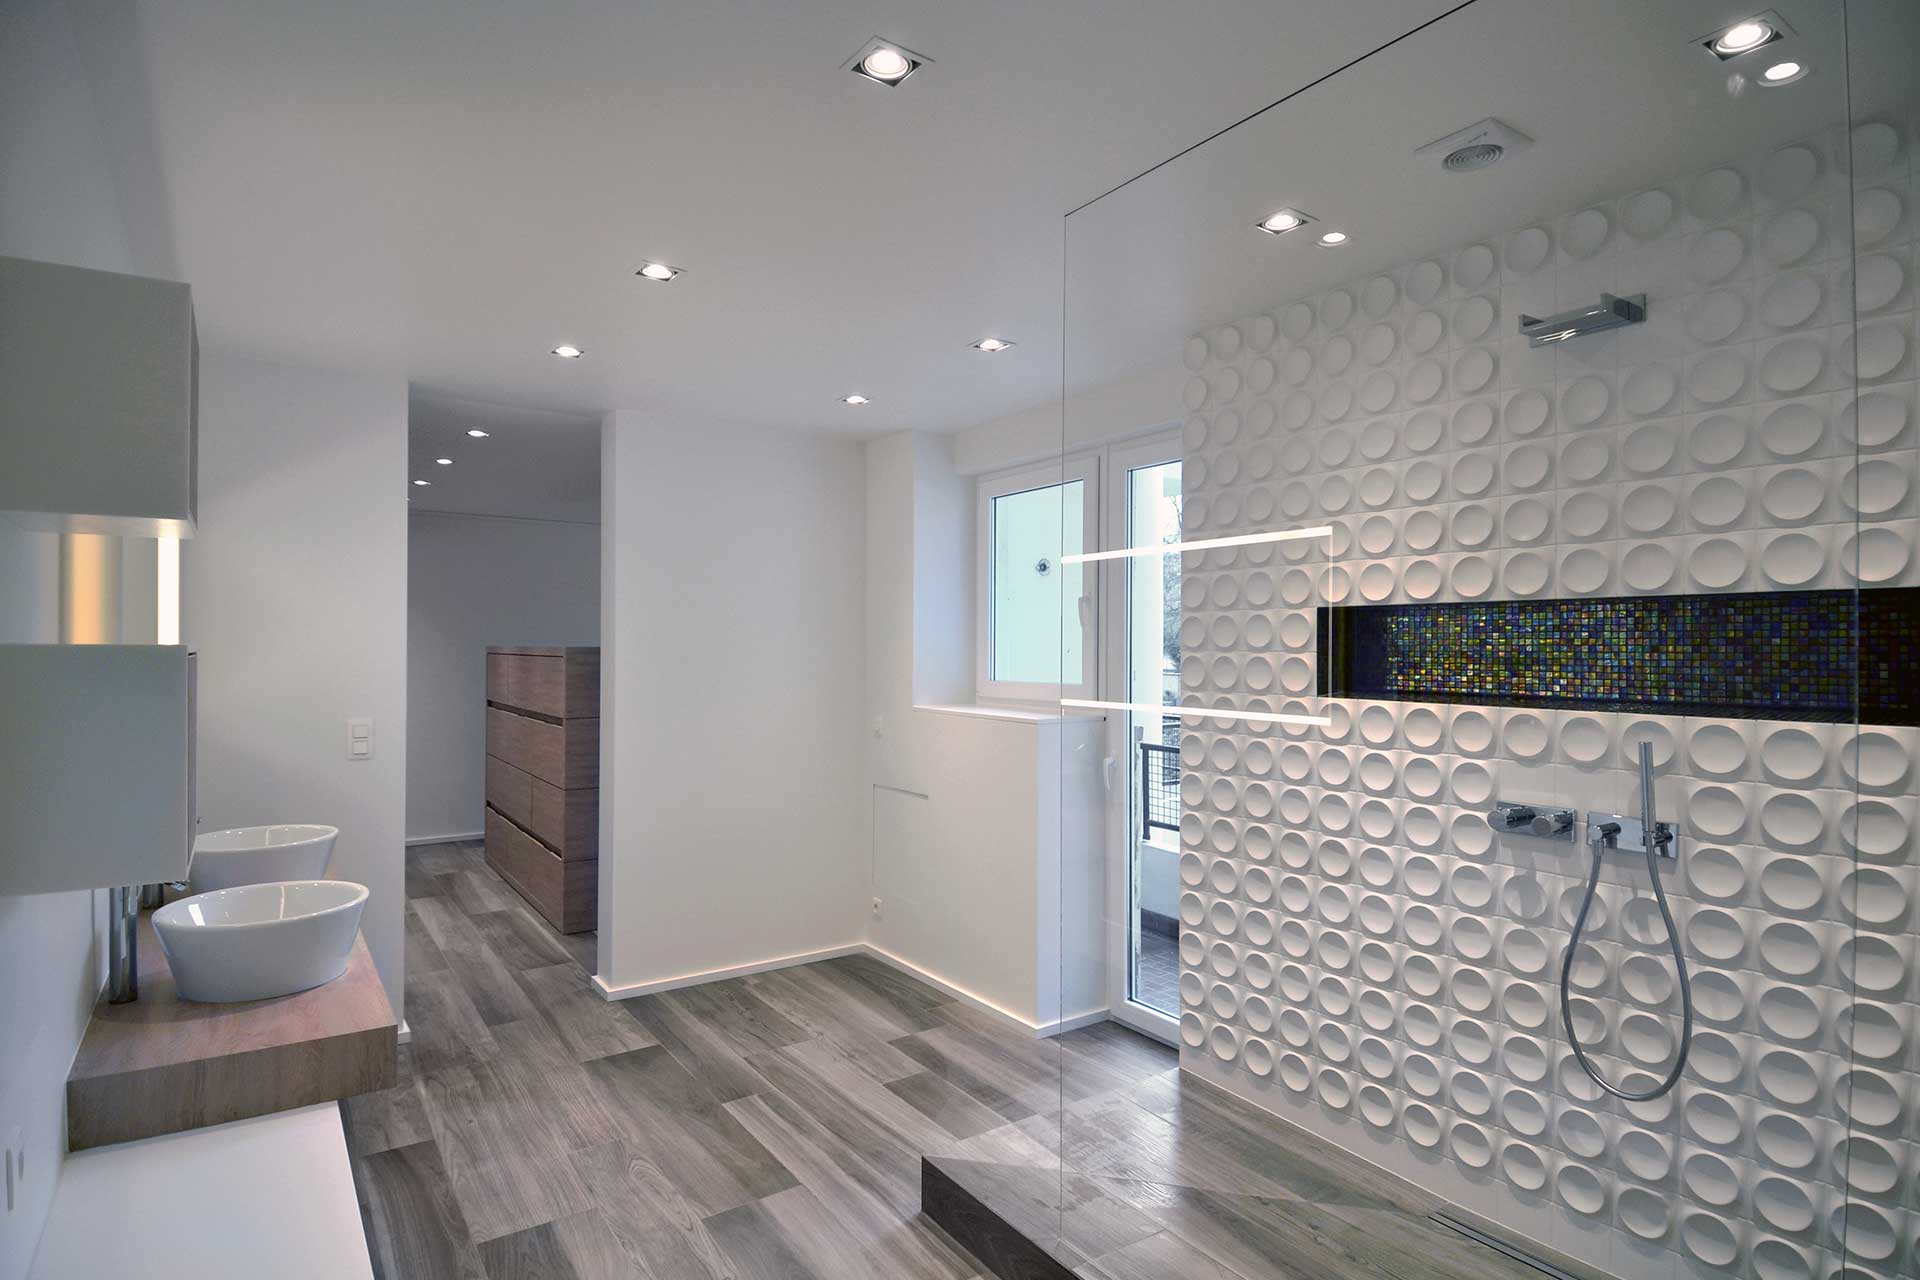 WOW Design Studio specialized in high end ceramic tile